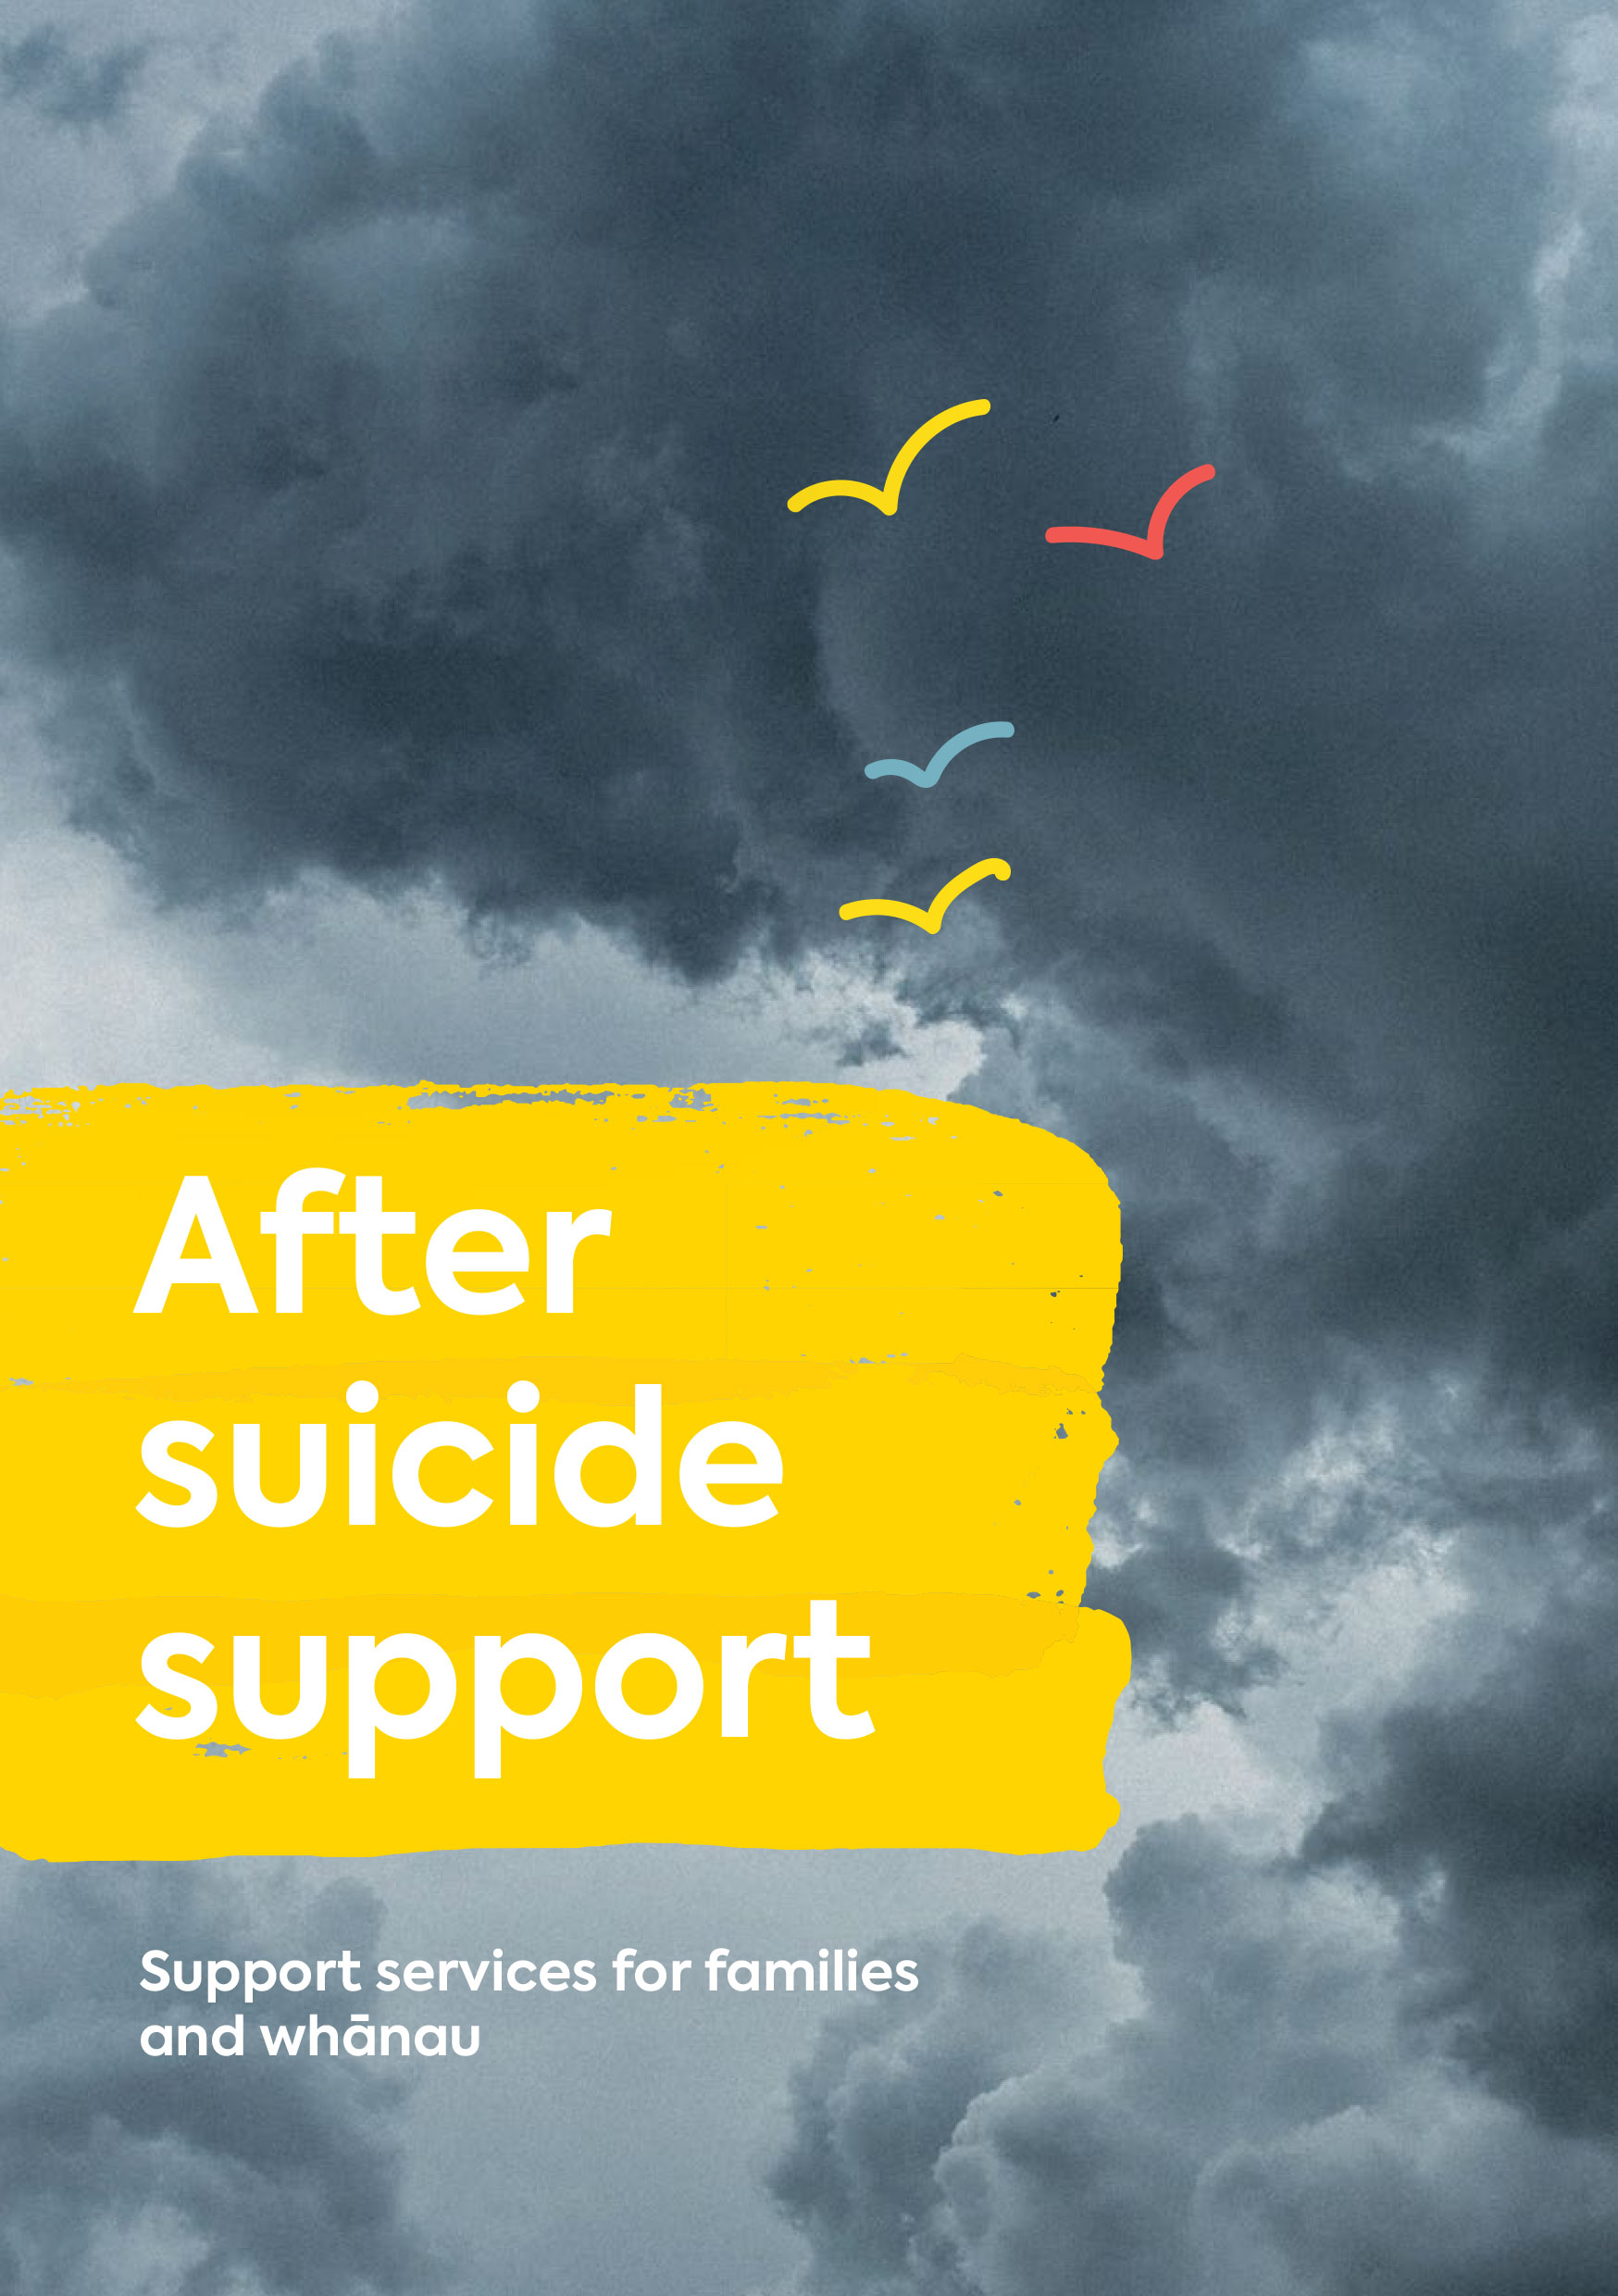 After suicide support services for families and whānau